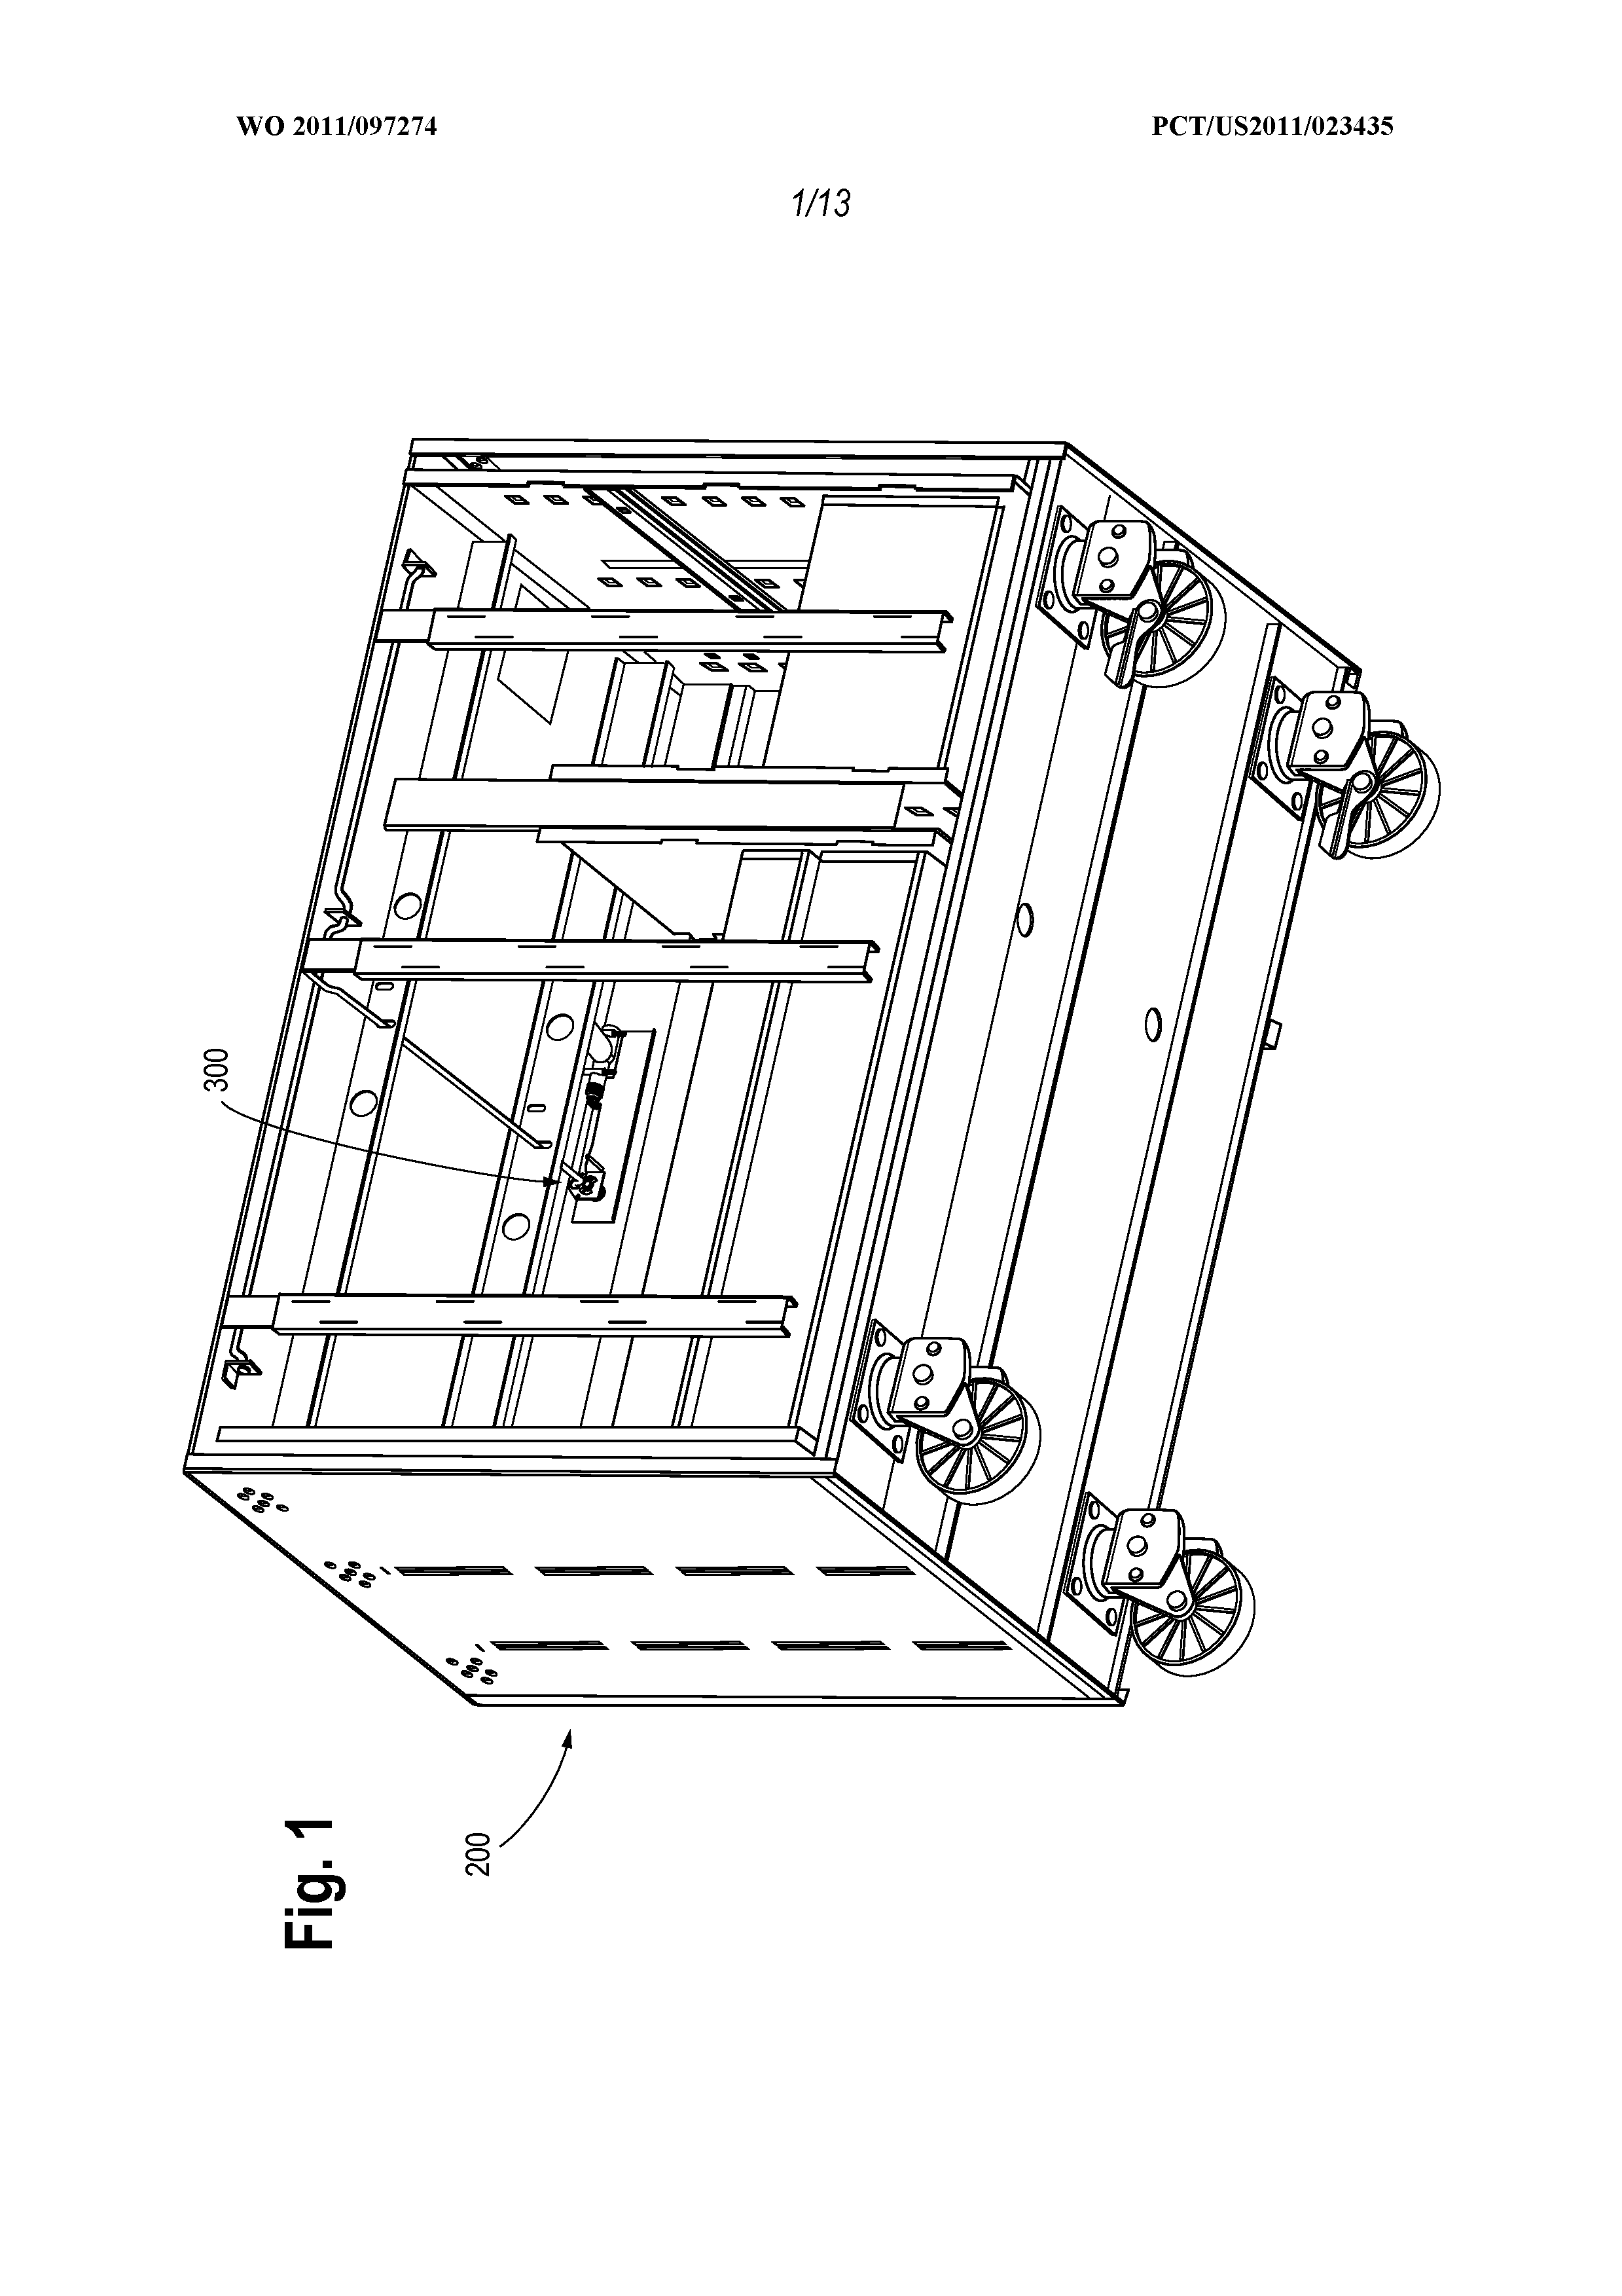 Tool Box Locking Mechanisms For Remote Activation By Snap